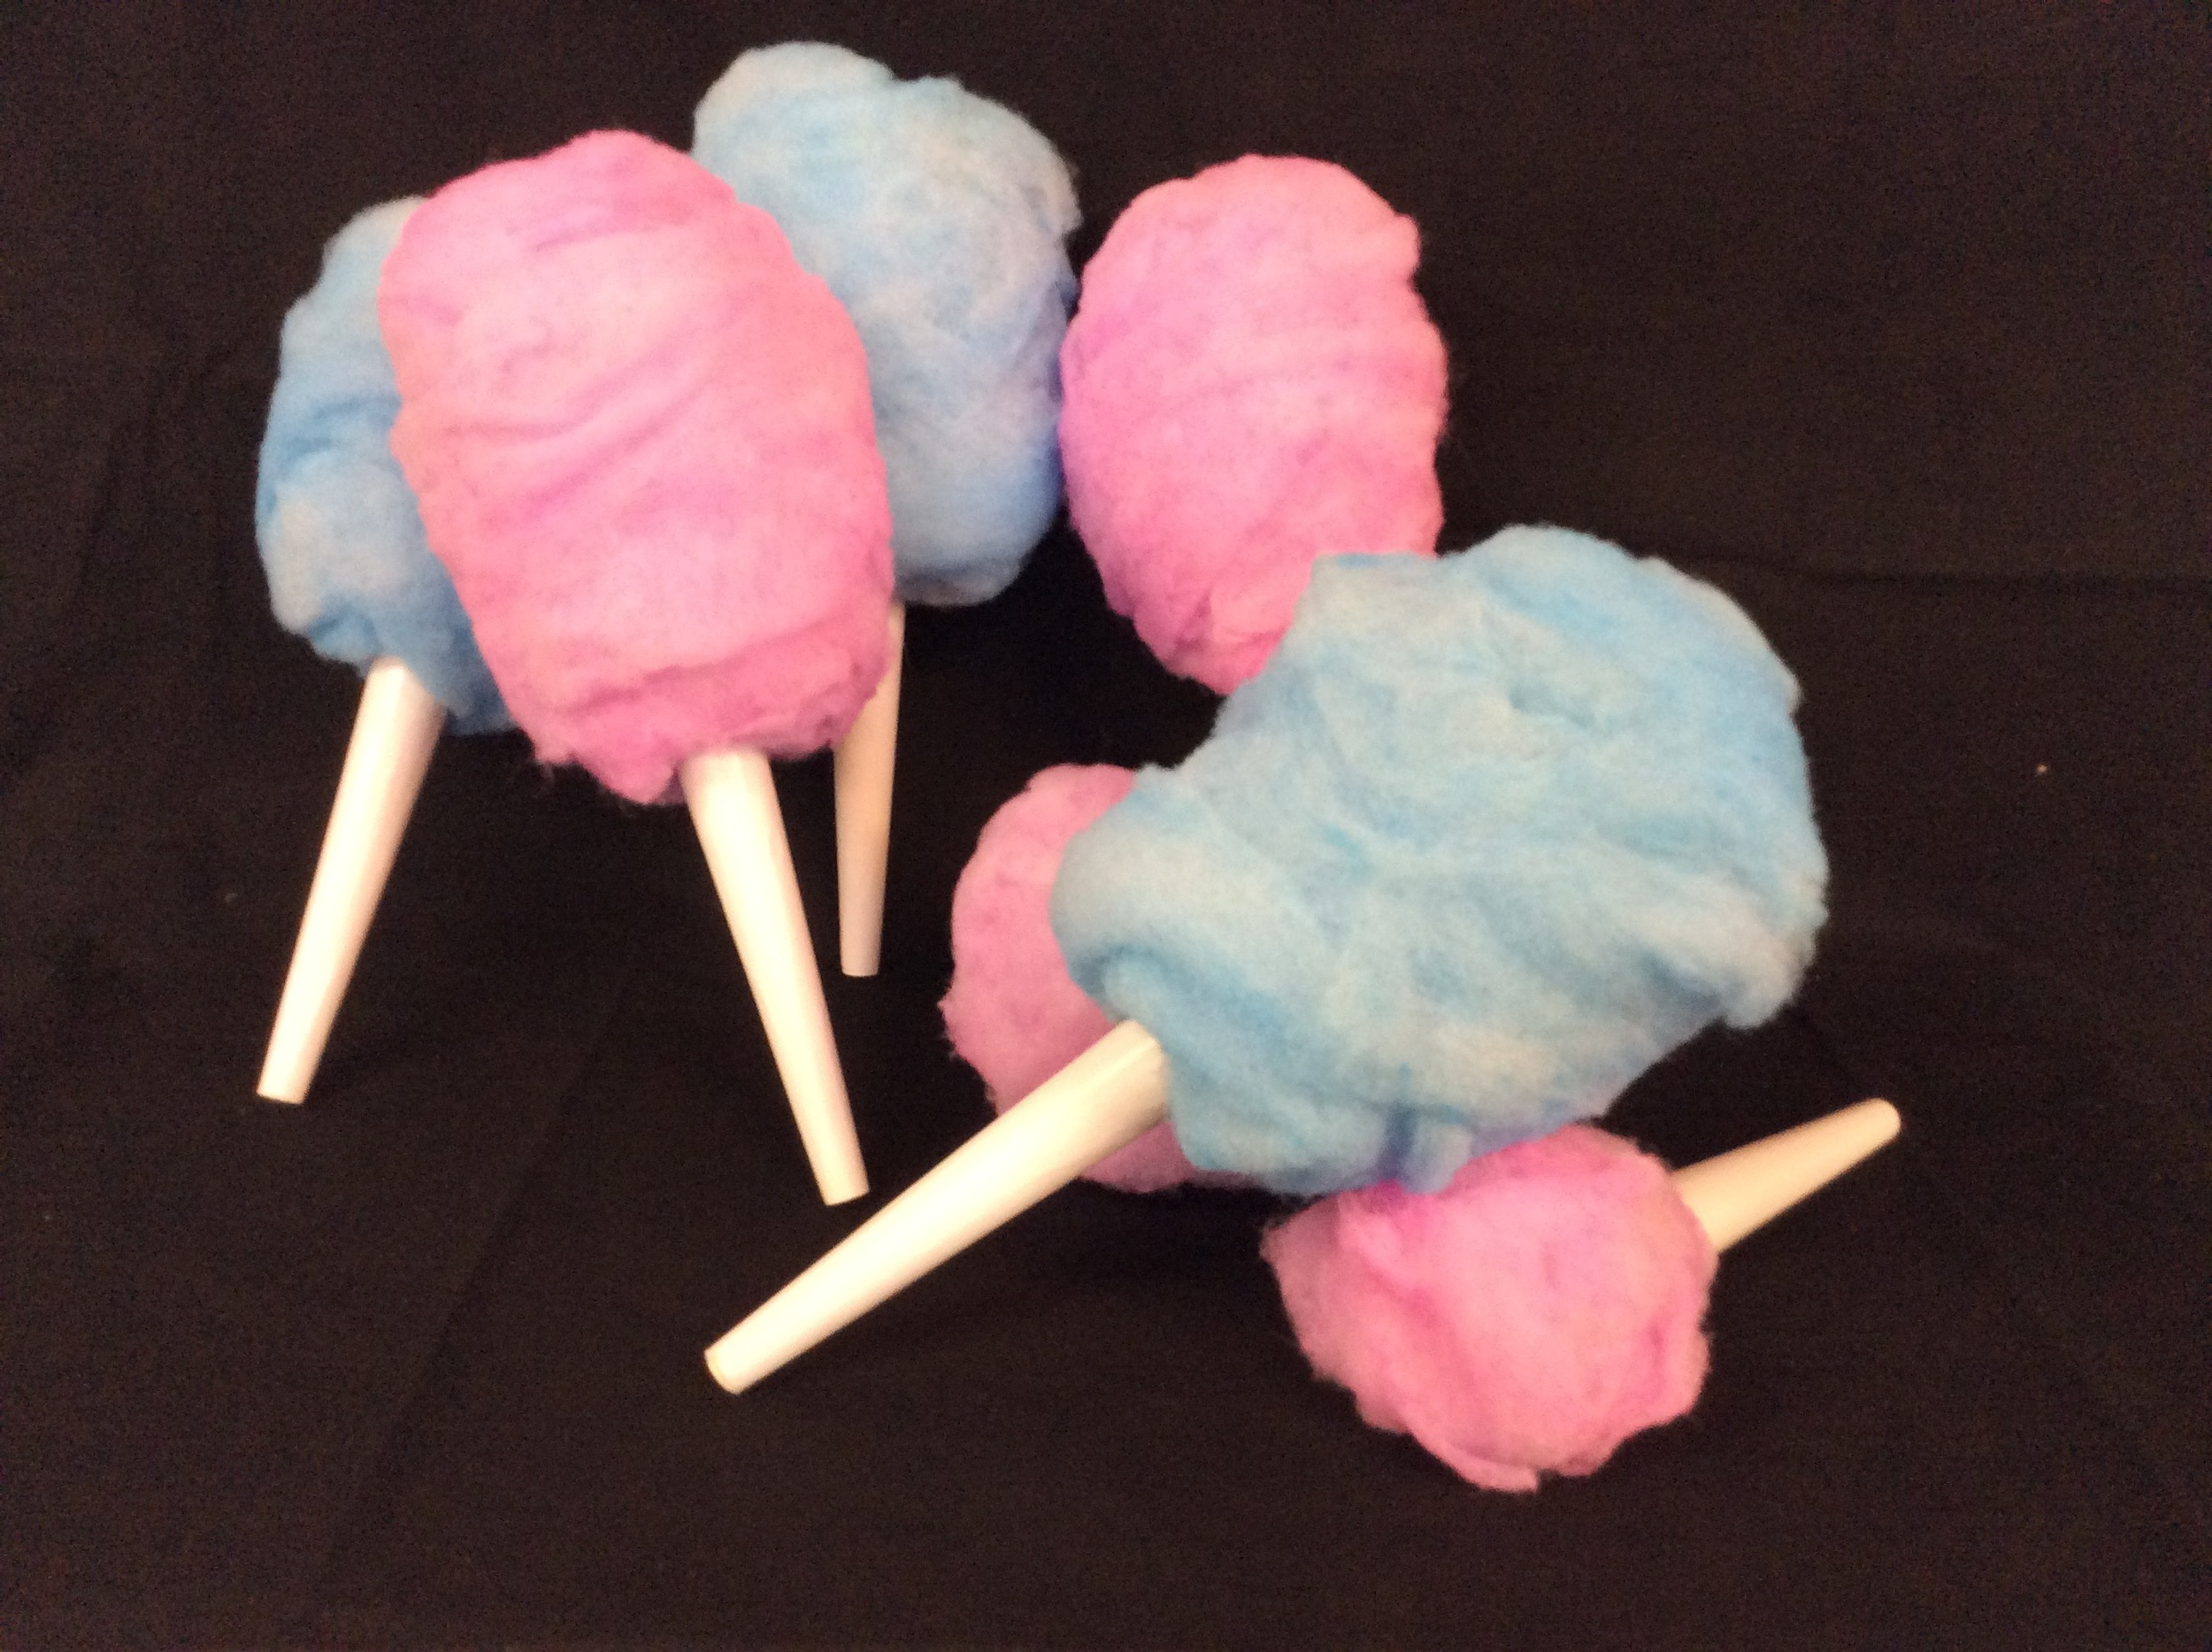 Cotton Candy, Tuck everlasting